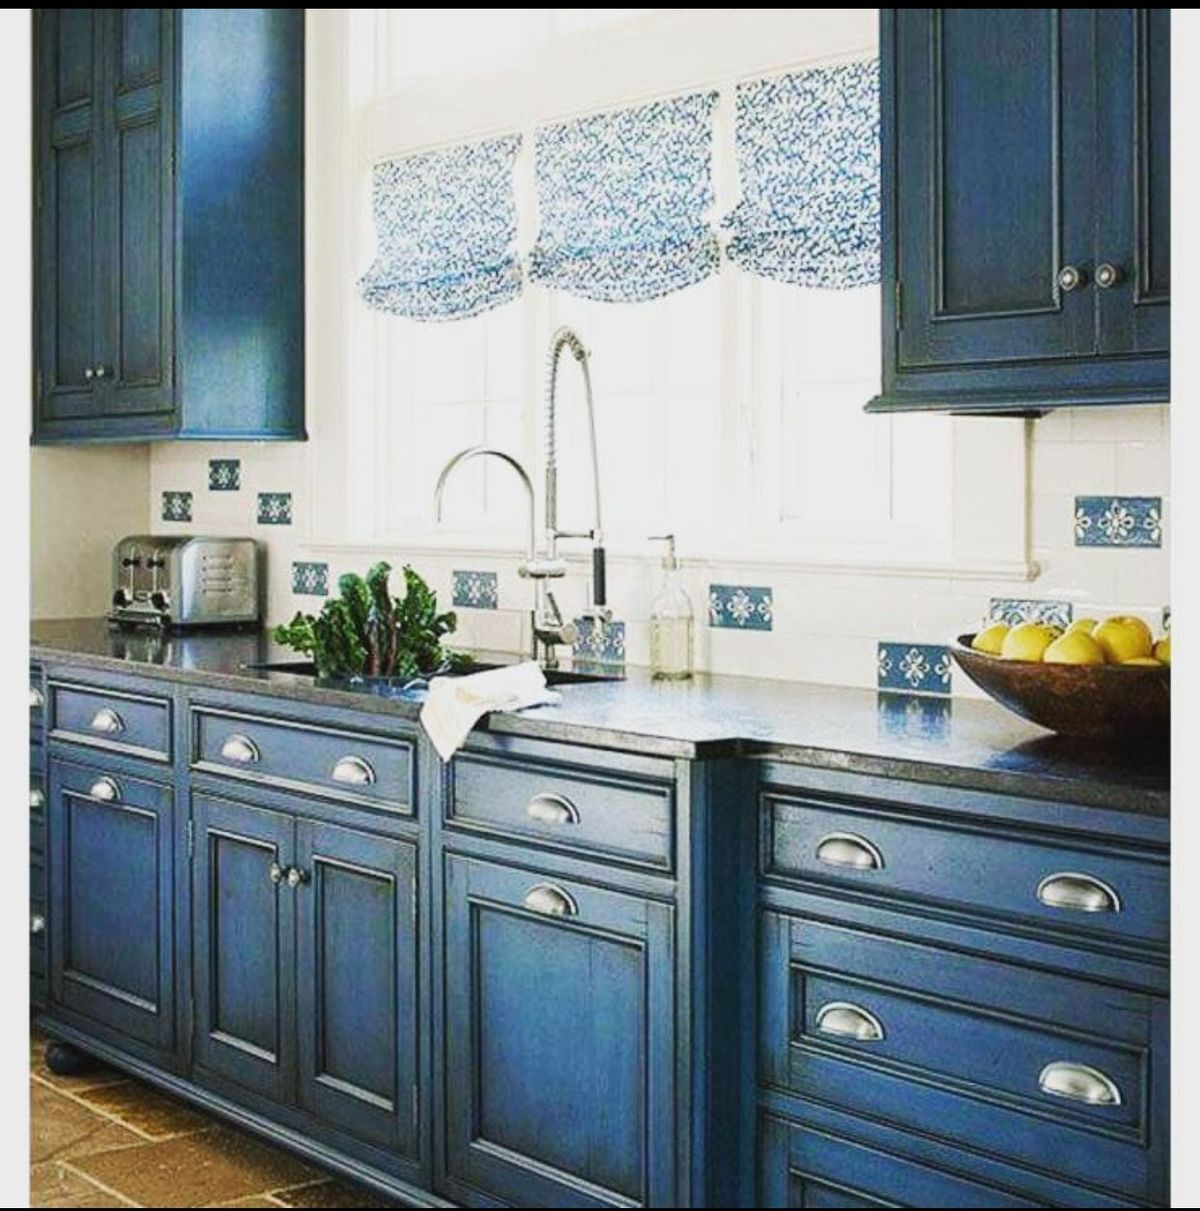 What Kind Of Paint To Use Inside Kitchen Cabinets What Kind Of Paint ...